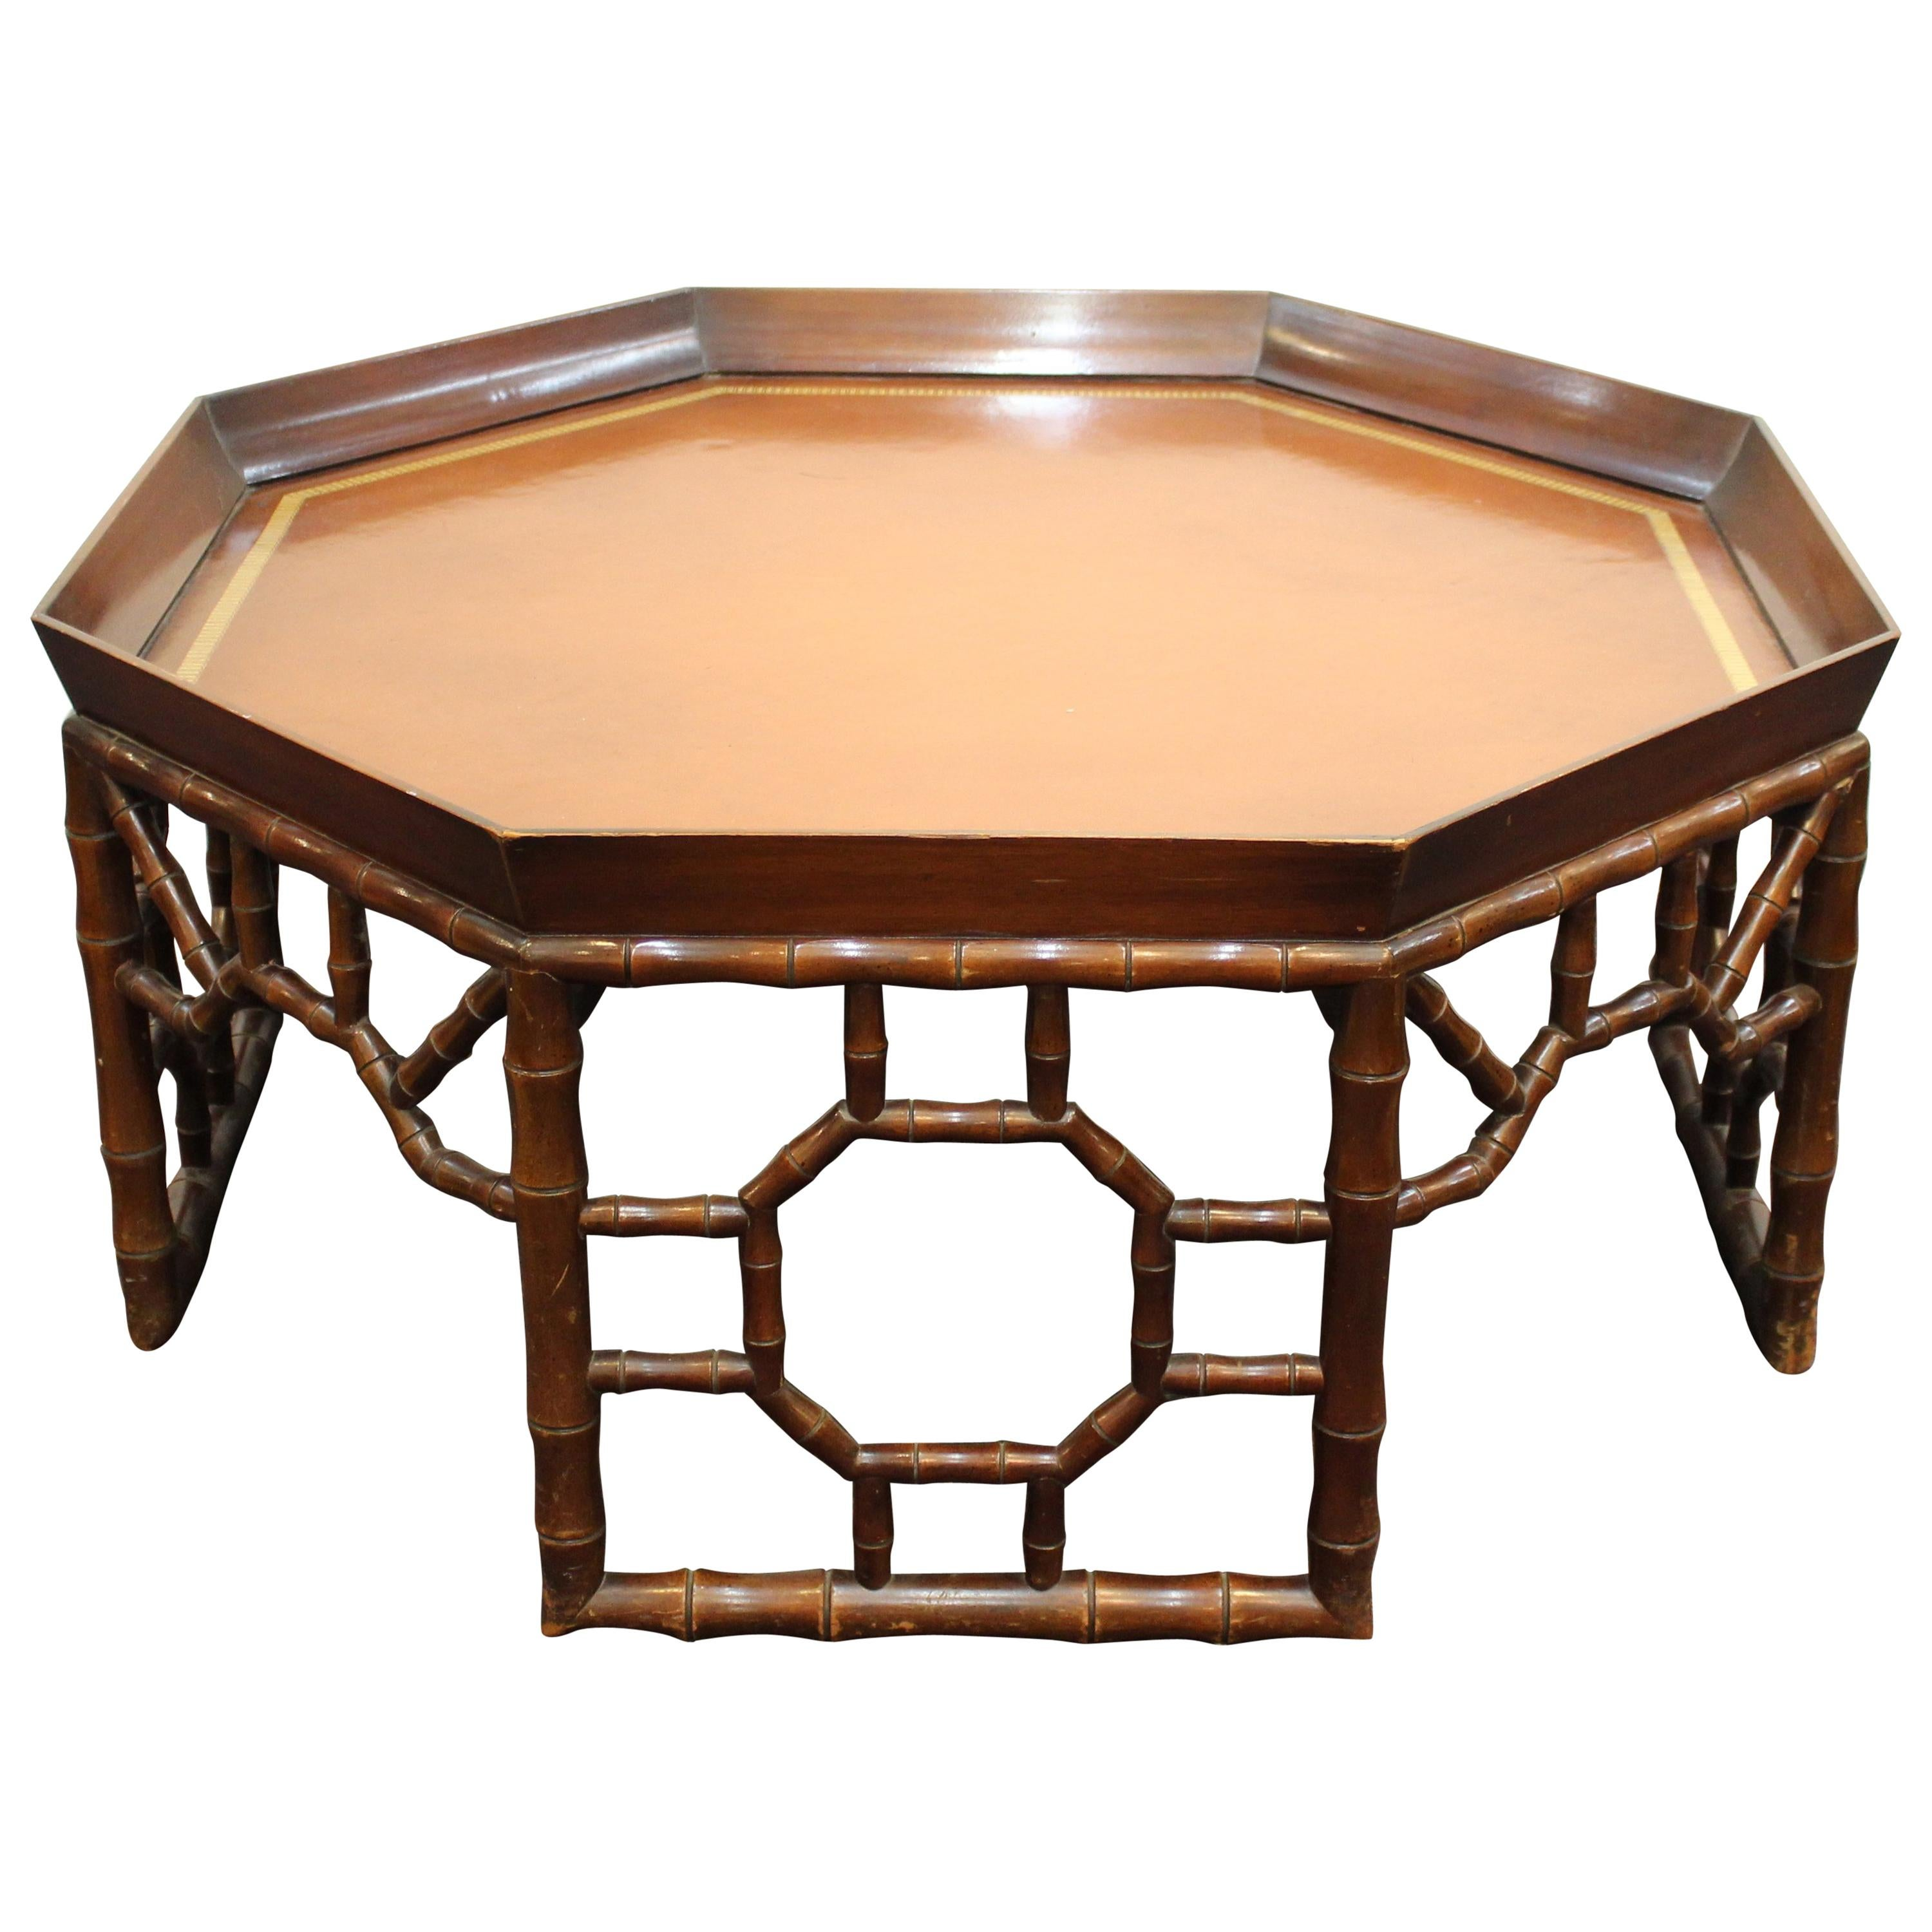 Baker Furniture Hollywood Regency Faux Bamboo Hexagonal Coffee Table